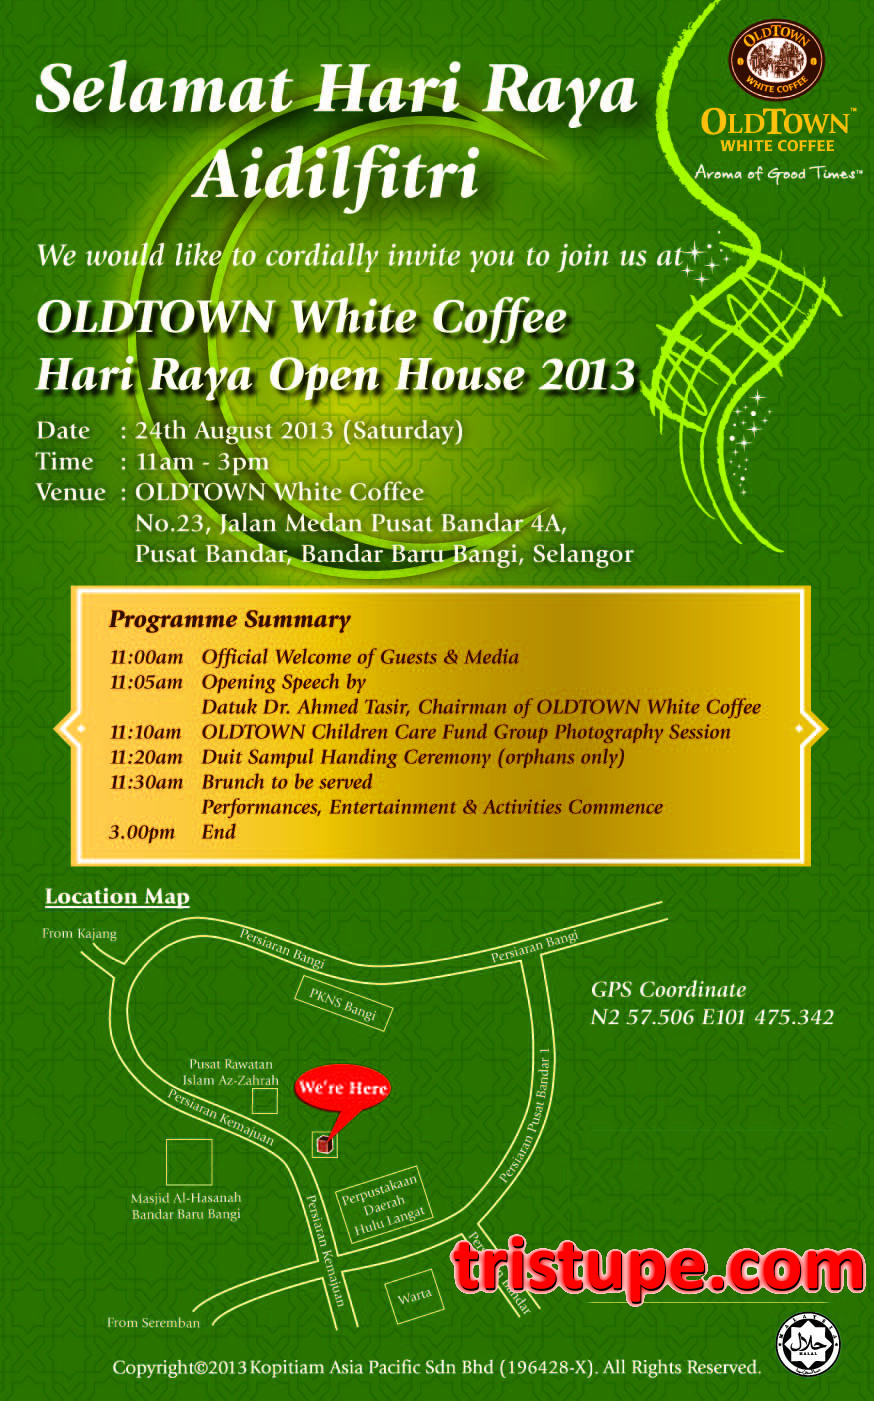 Press release old town white coffee raya open house tristupe this is oldtowns first open house and we would like to make this event special and as exciting as possible for everyone said datuk tasir stopboris Choice Image